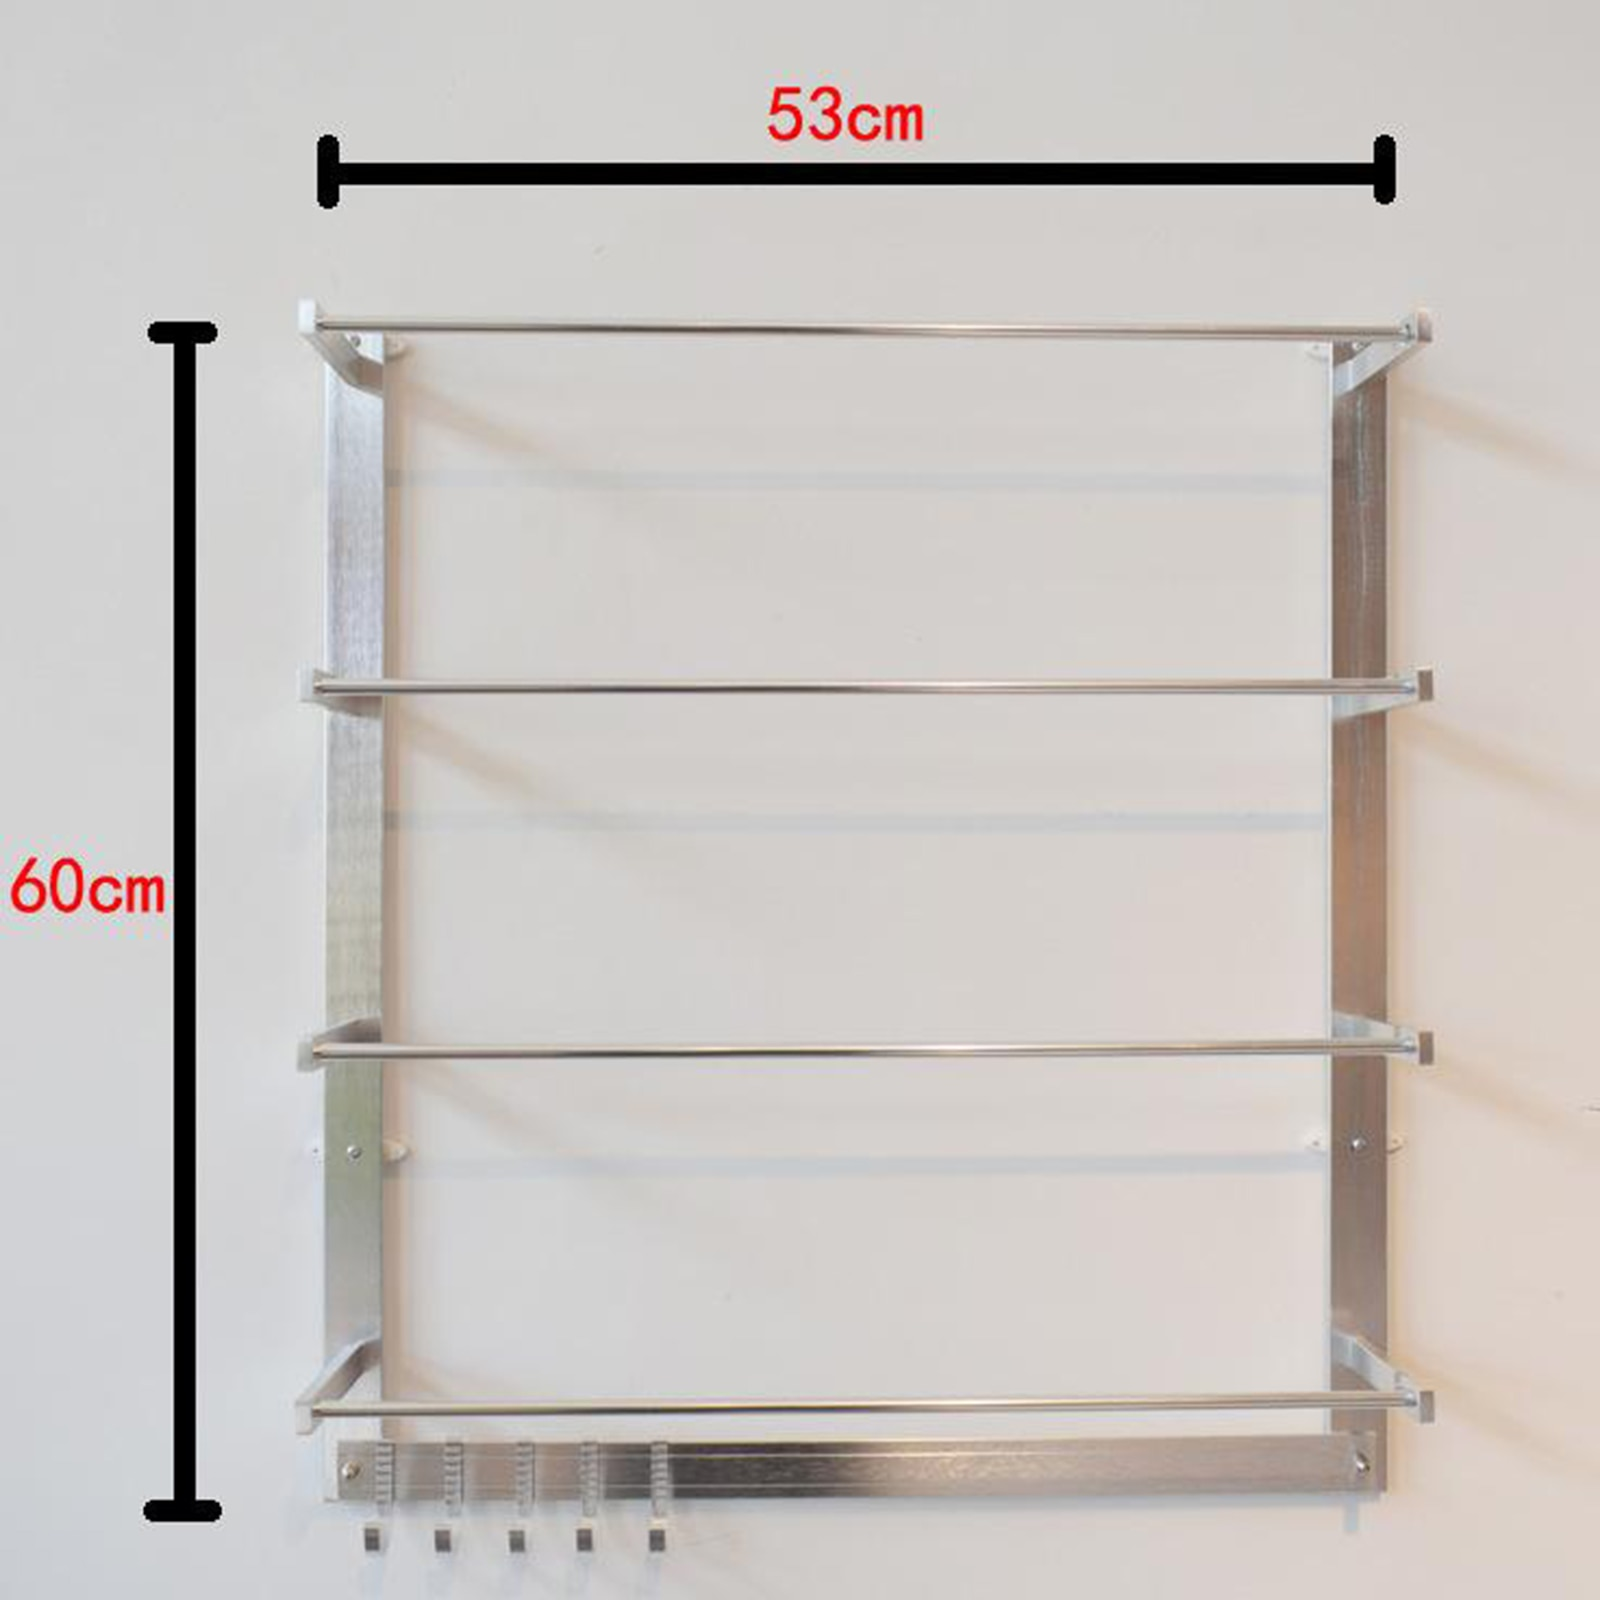 Wire Spools Storage Wall Mounted Rack Electrical Cable Holder Ribbon Organizers Embroidery Sewing Thread Holder tabletop Spool